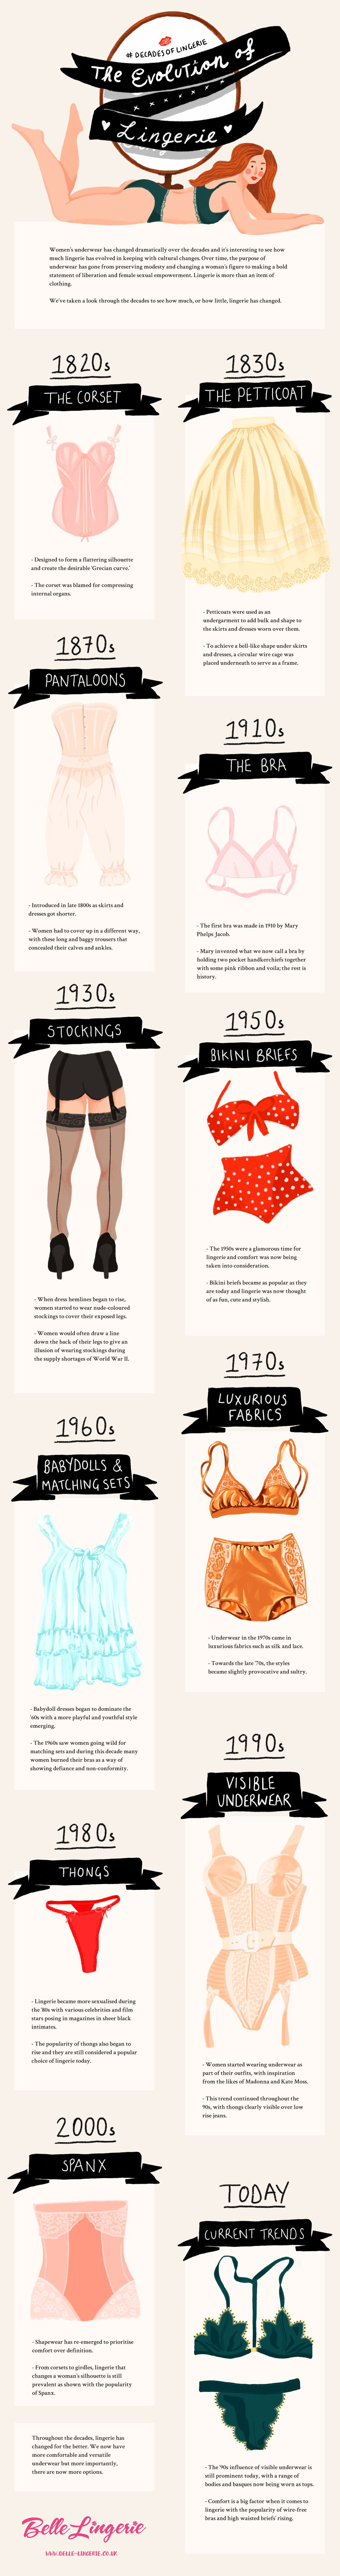 The Evolution of Lingerie